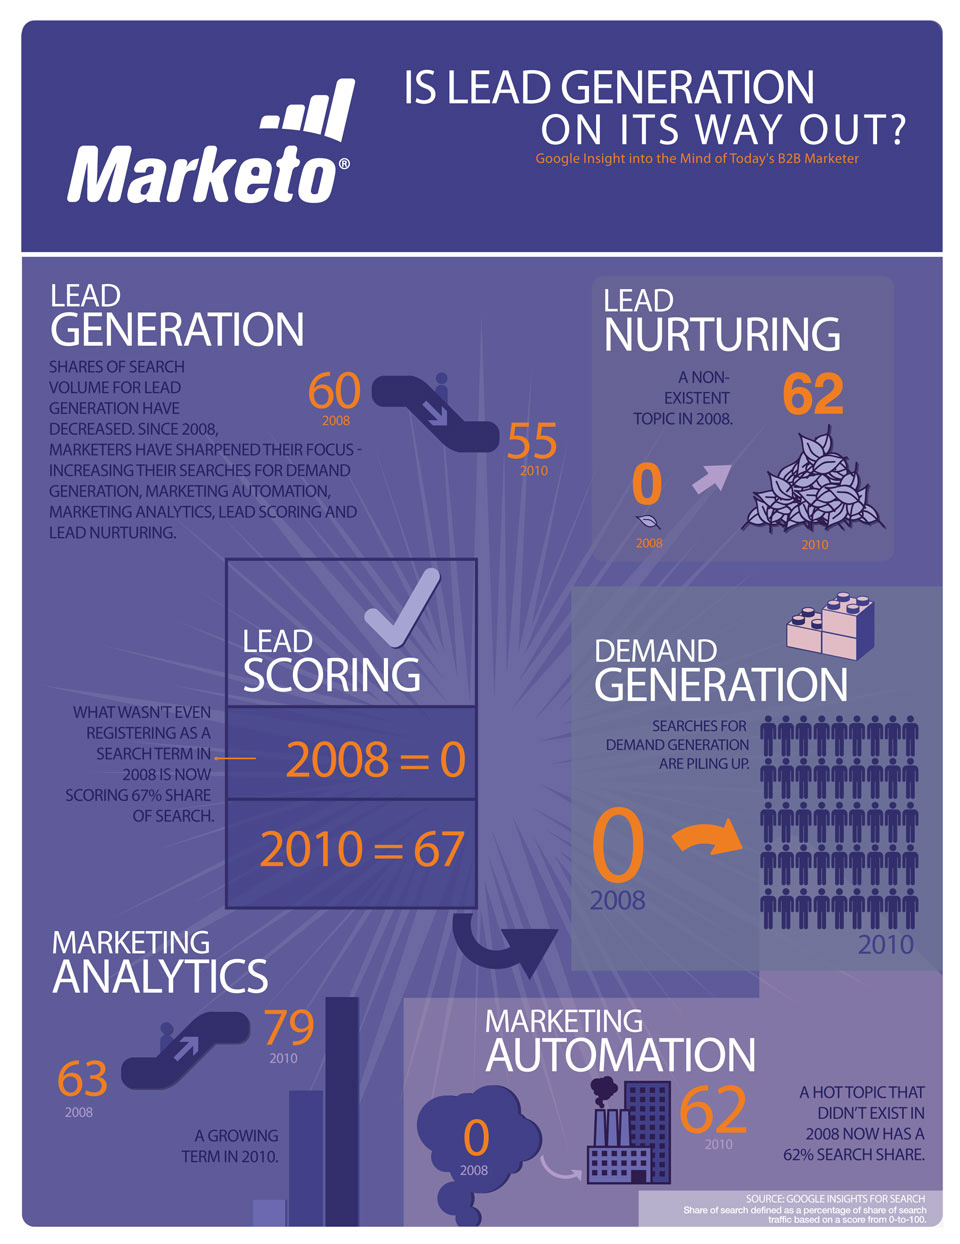 Is Lead Generation On its Way Out? Infographic by Marketo